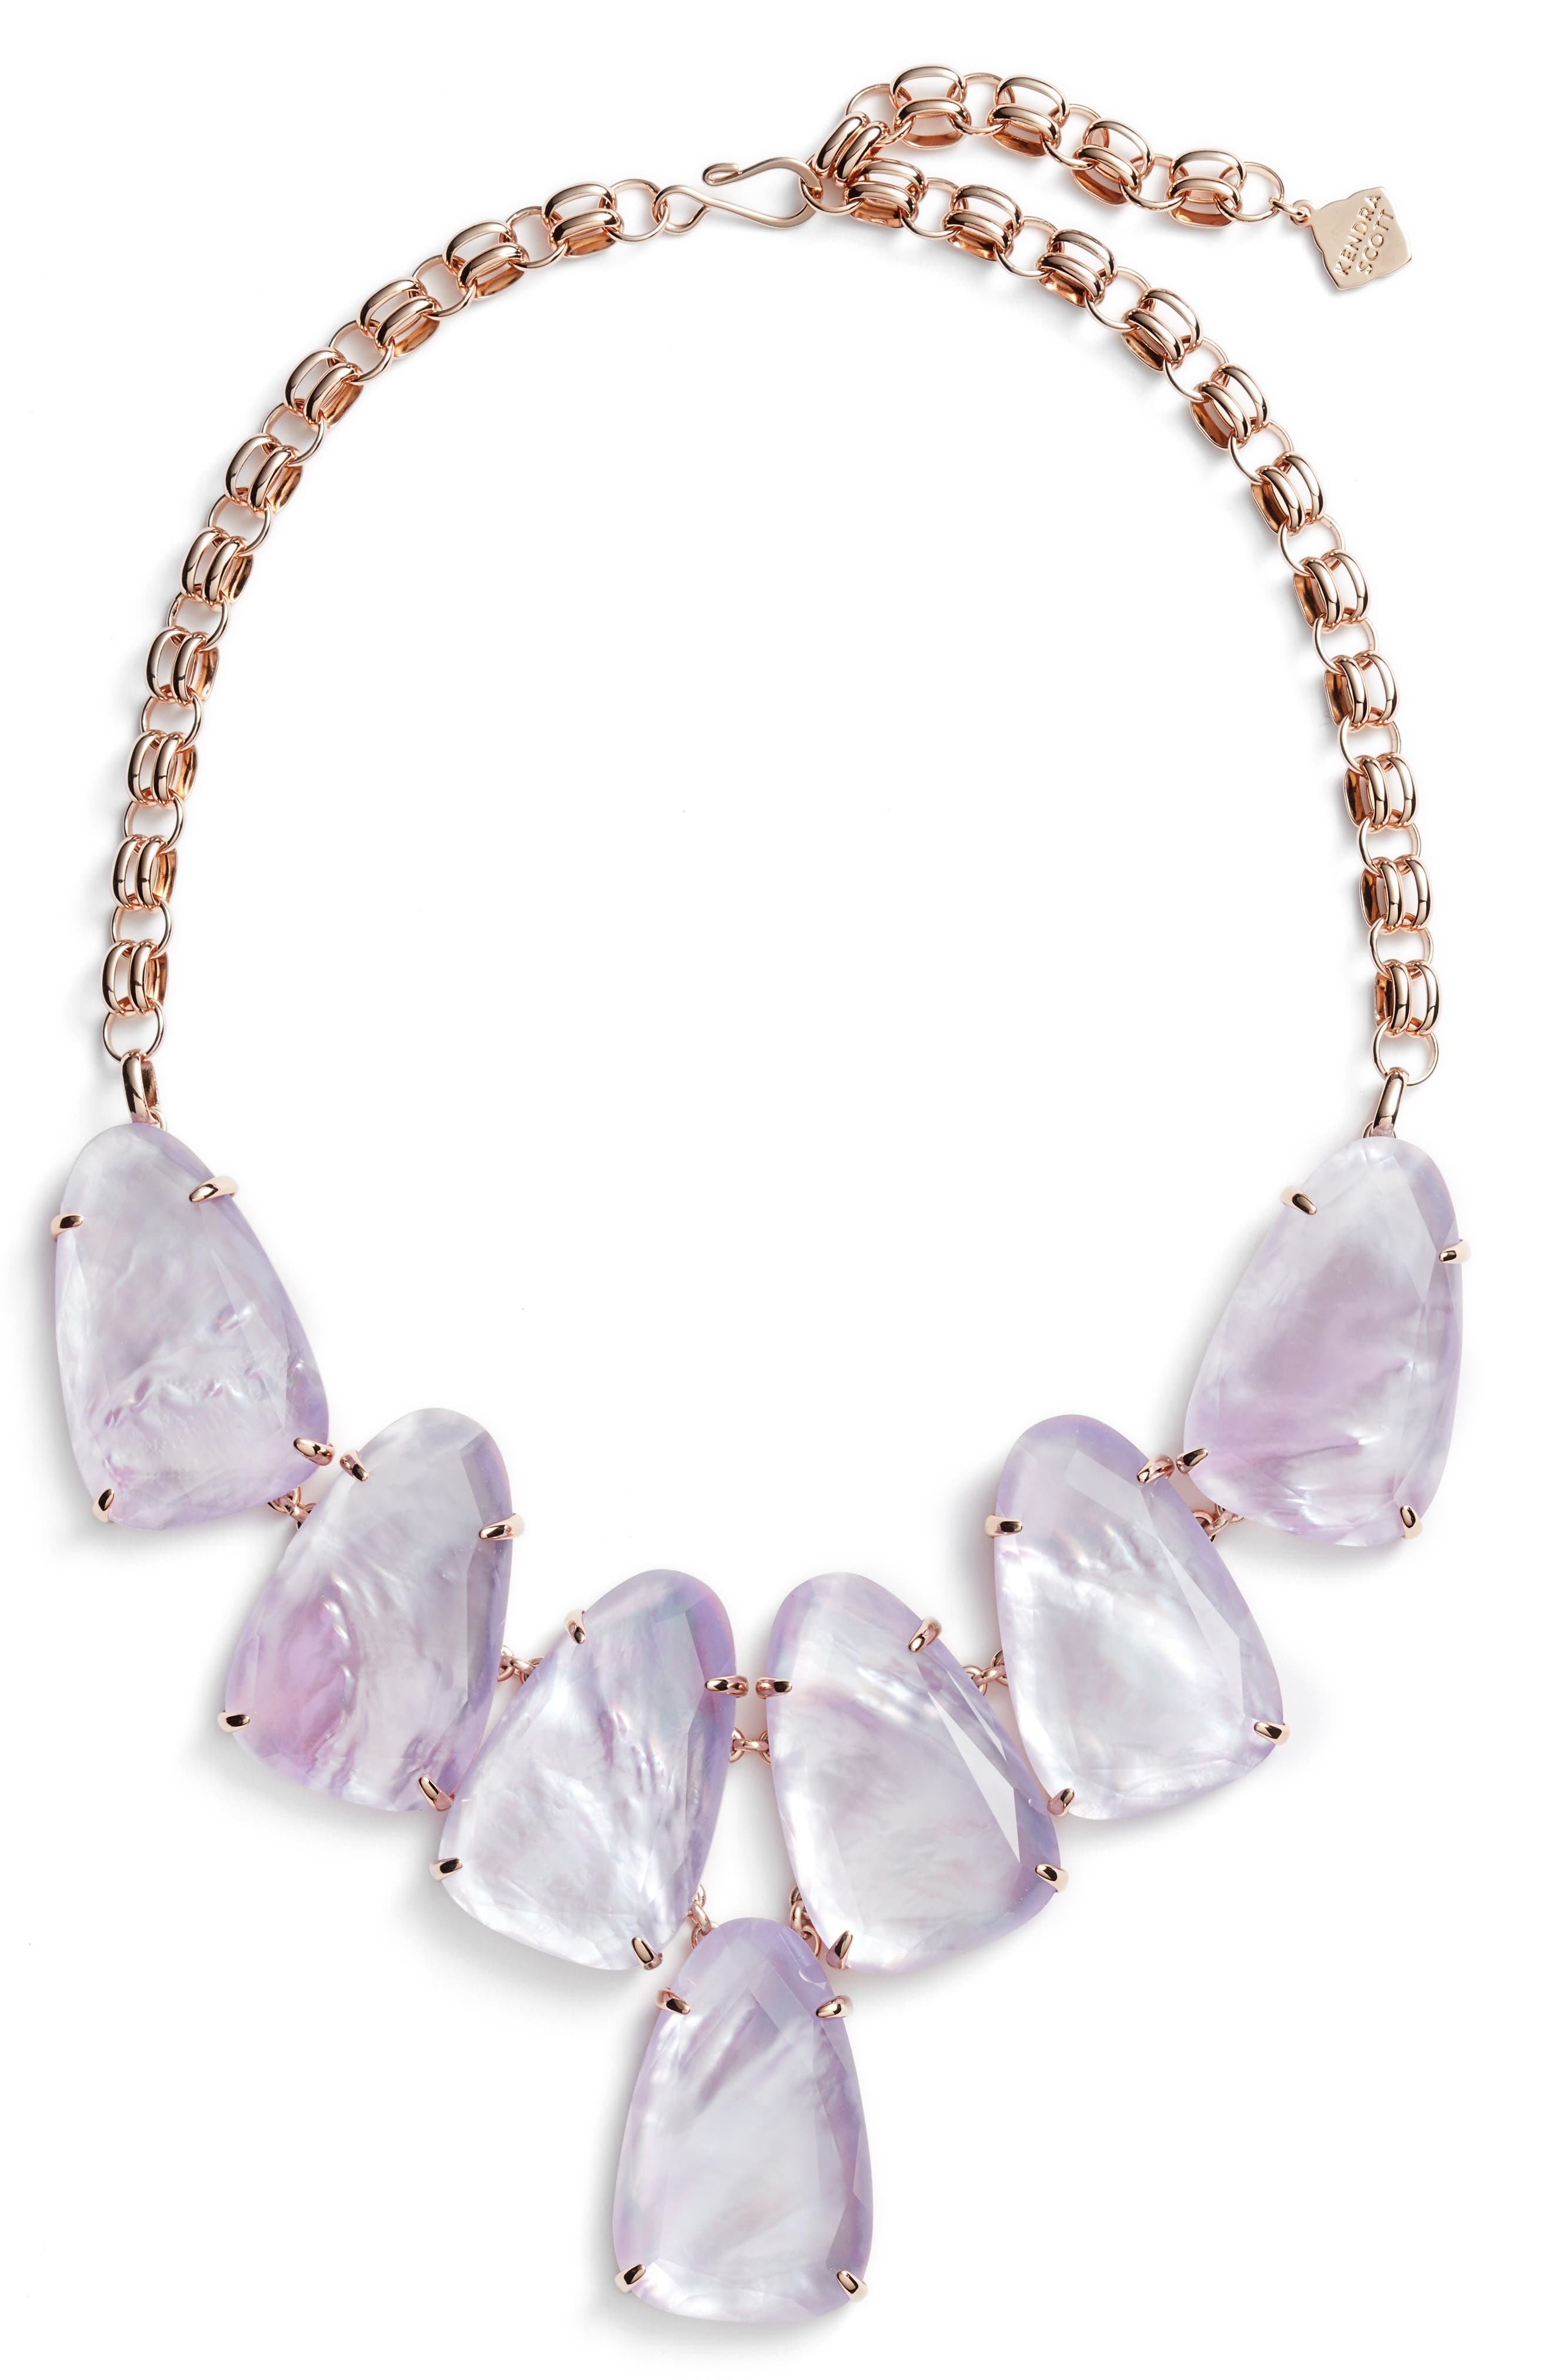 Harlow Necklace,                         Main,                         color, Lilac Mop/ Rose Gold